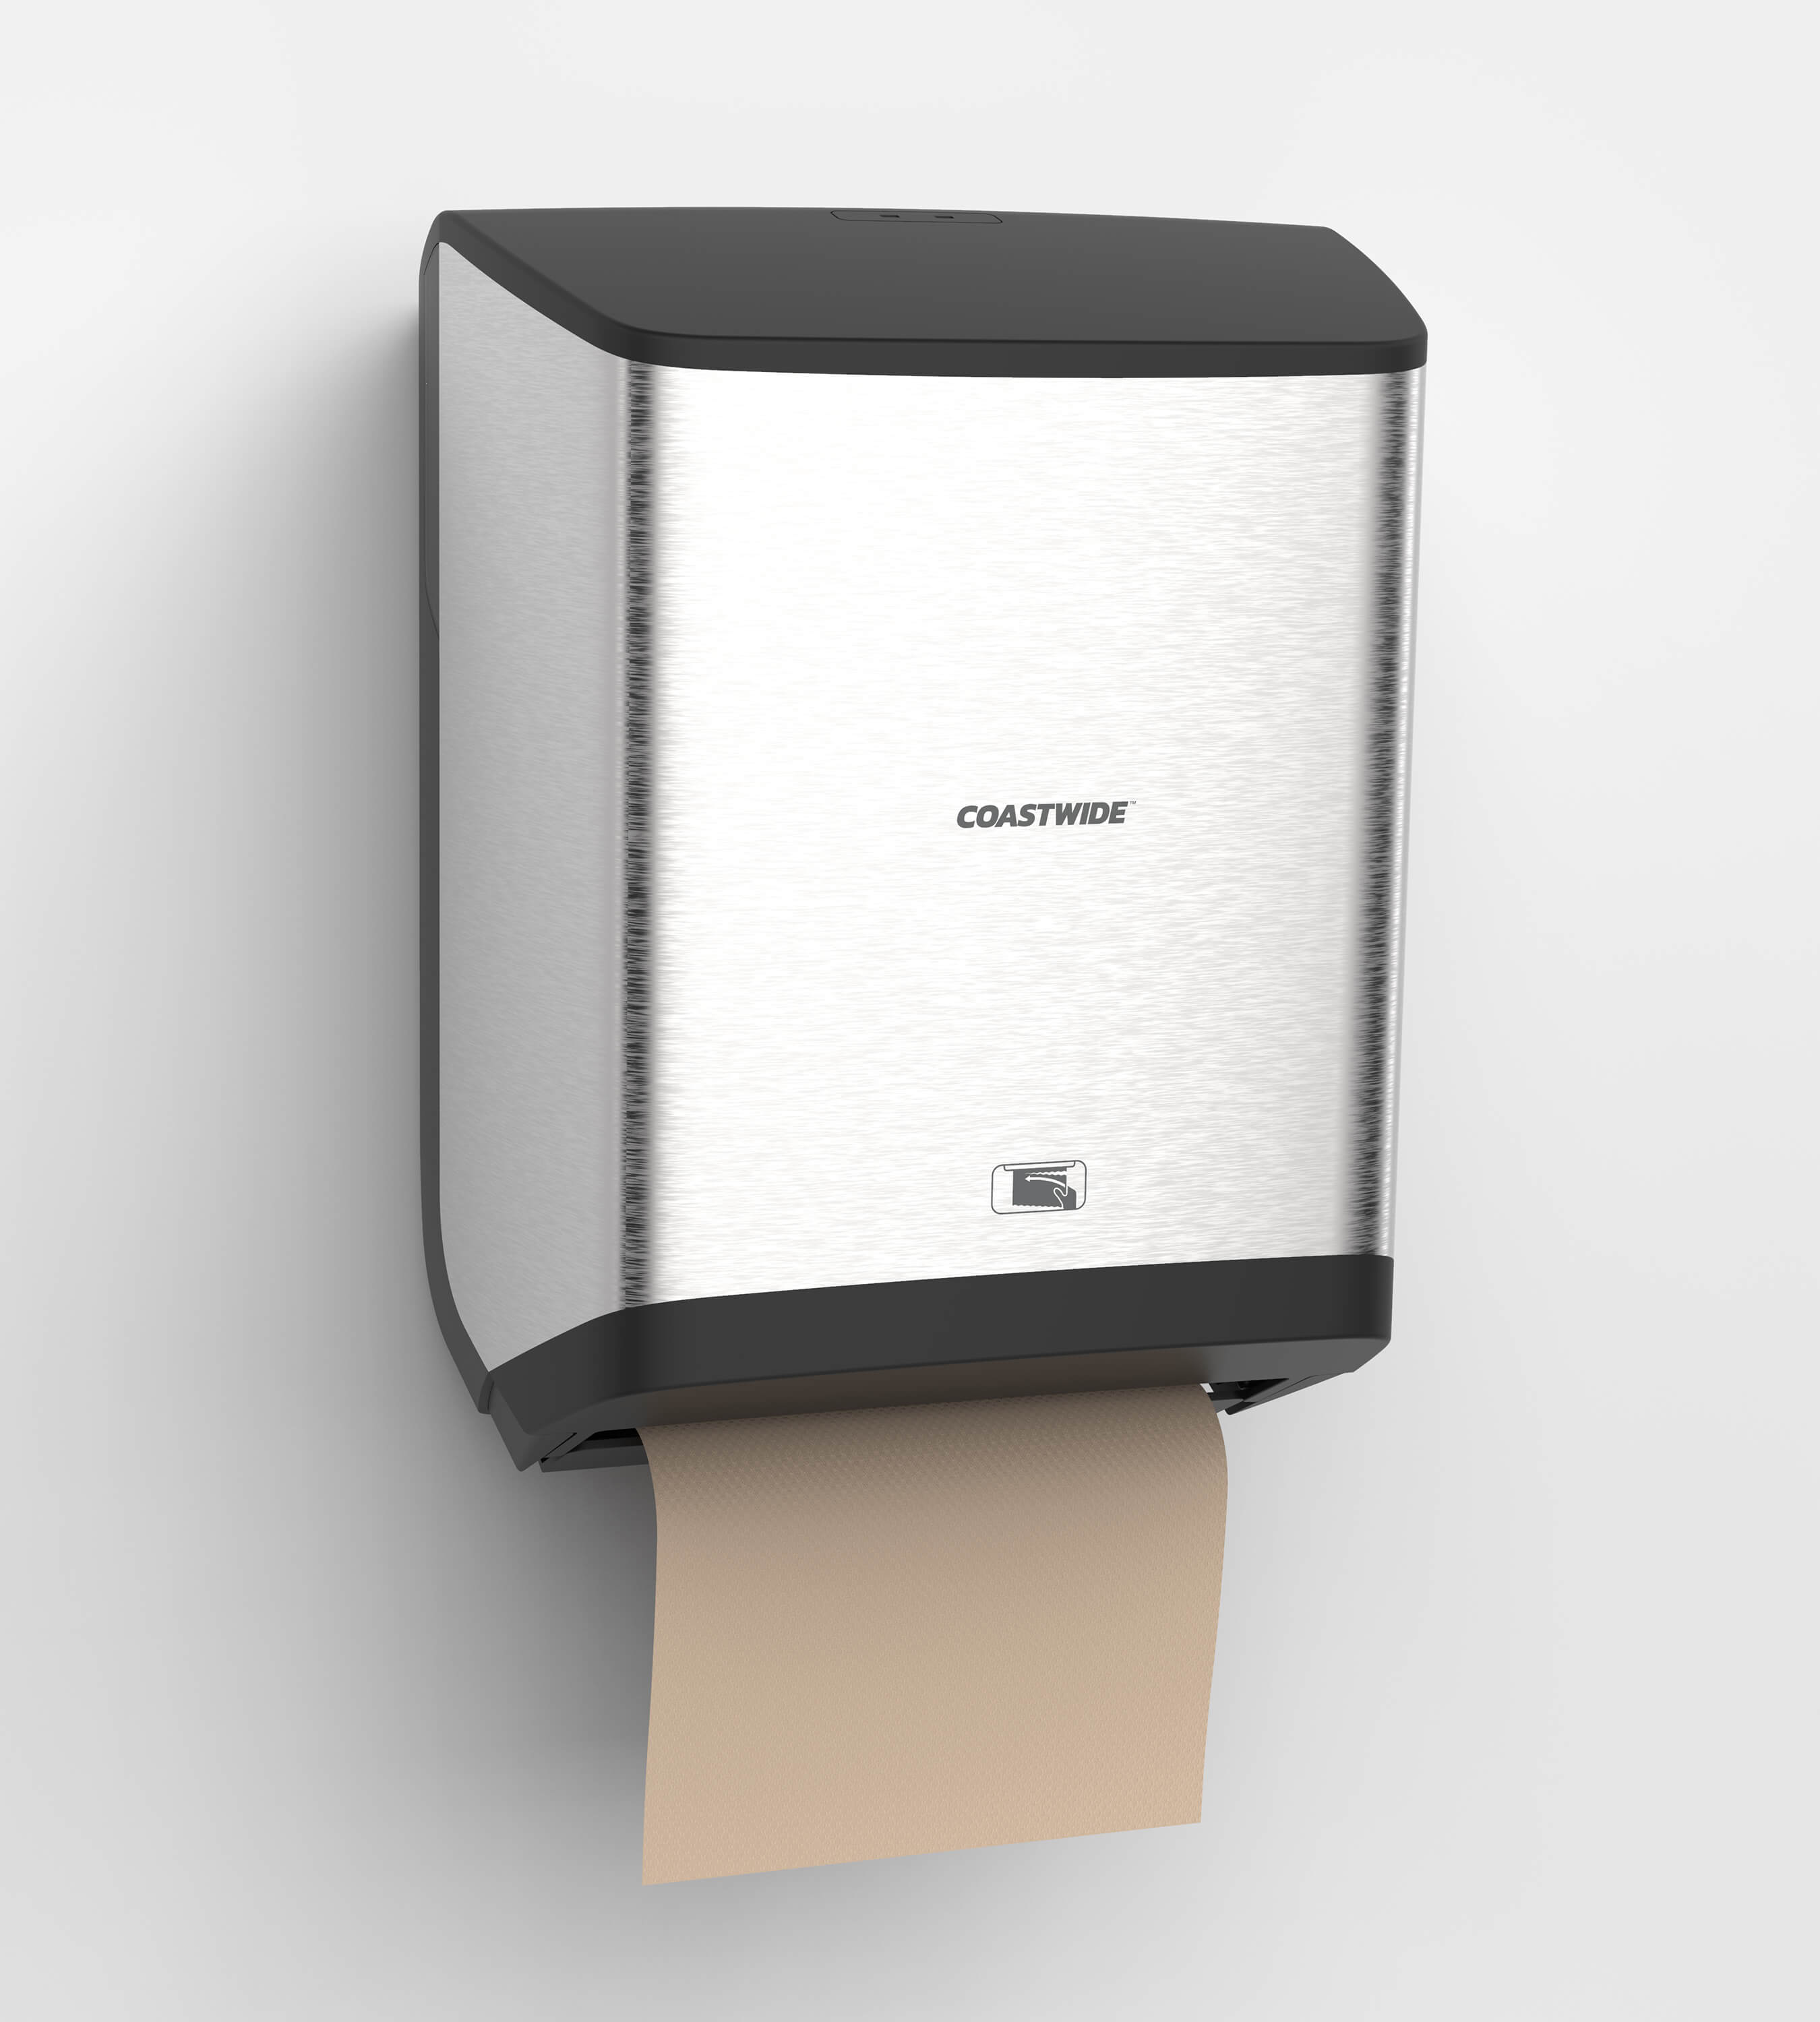 3D CAD Render by Sprout Studios of a paper towel dispenser